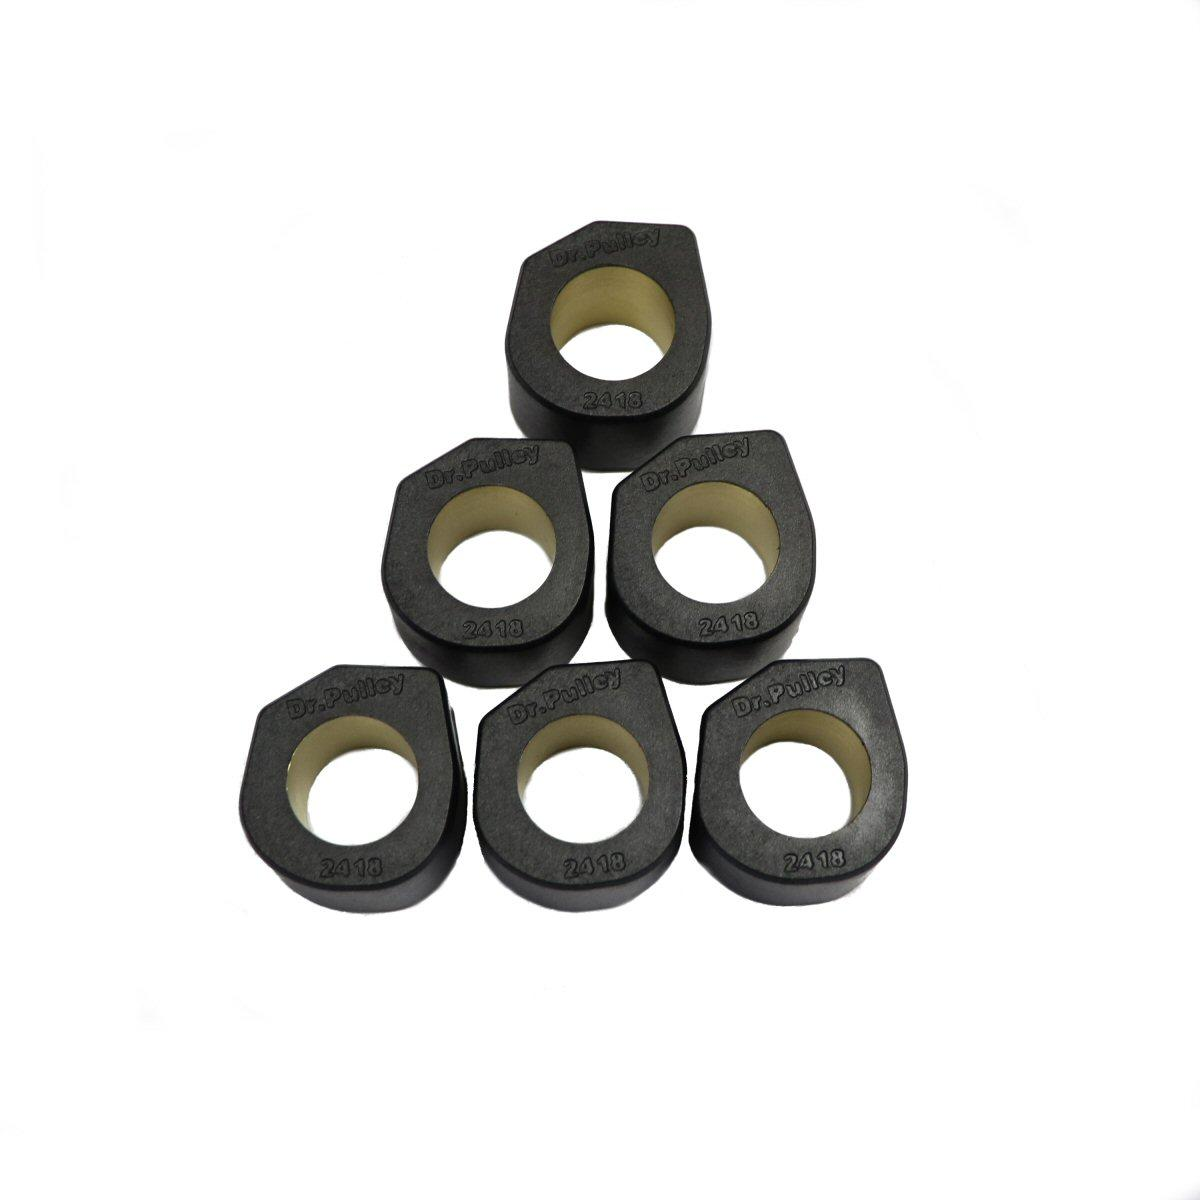 Dr Pulley 20x15 Sliding Roller Weights 7 Gram